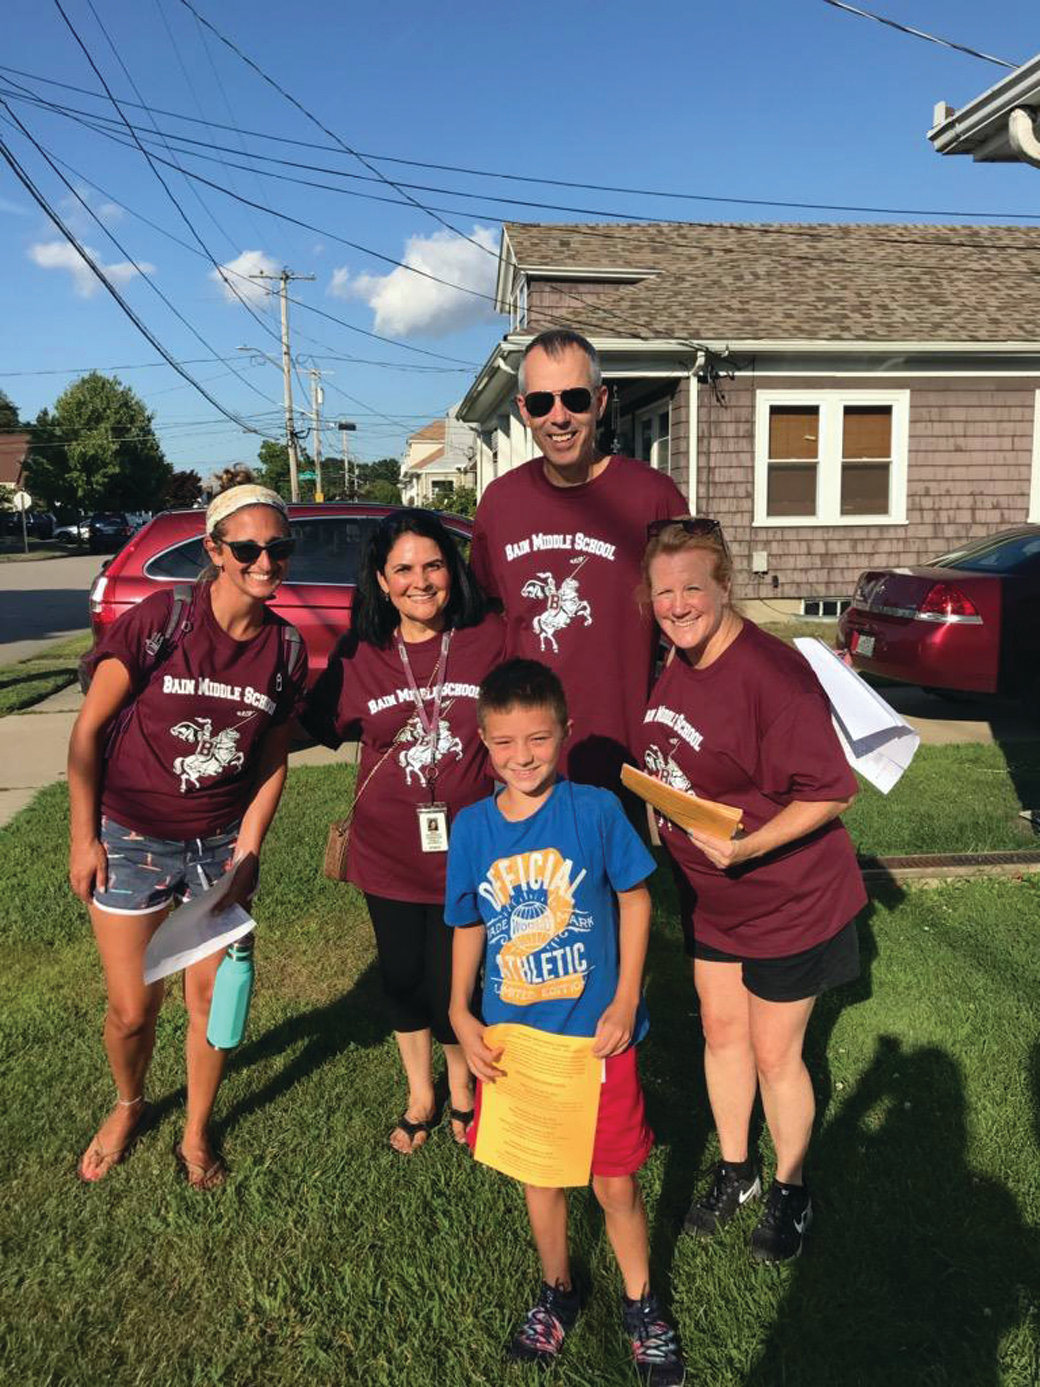 WELCOME TO BAIN: Incoming Bain sixth-grader Gavin Kilduff posed with the team of staff members who visited his house during last week's neighborhood walks, including Assistant Principal Brian Flinn and teachers Michele Dunphy, Tammy Andrade and Rachel Bousquet. (Courtesy of Cranston Public Schools/Jen Cowart)